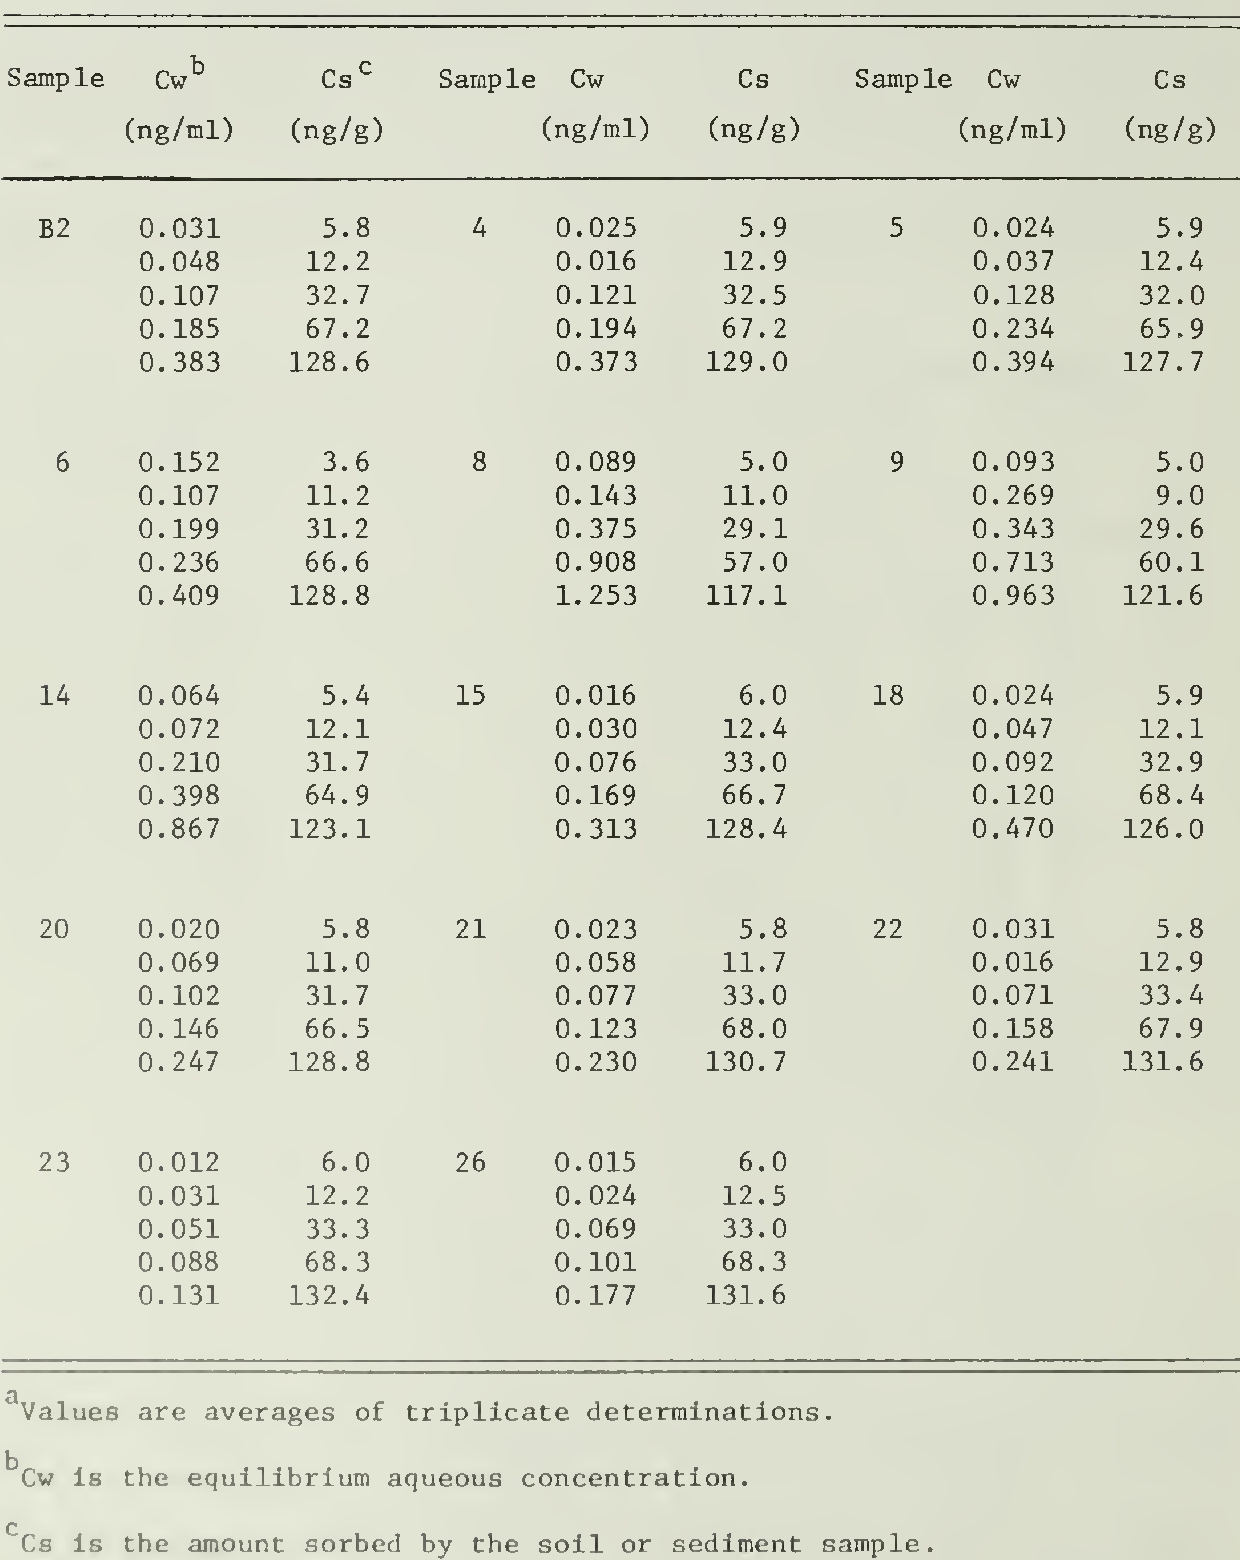 table 4.38